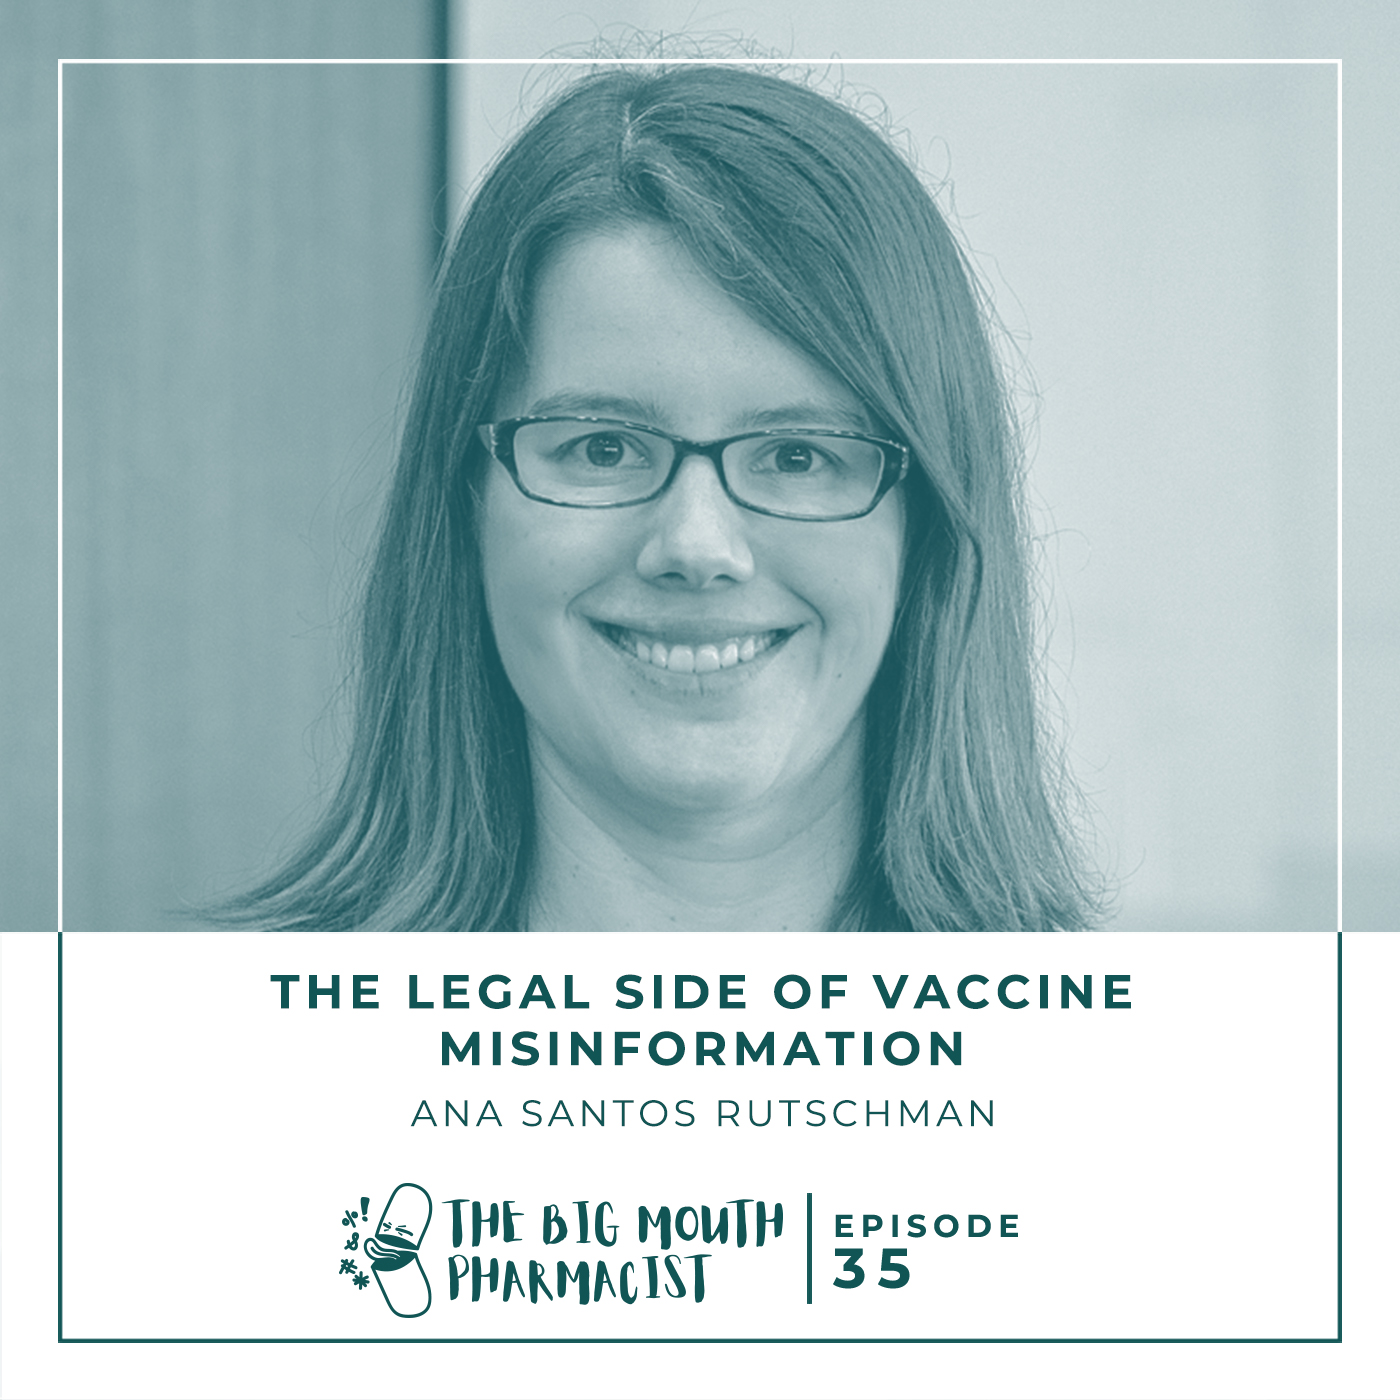 #35 The Legal Side Of Vaccine Misinformation with Ana Santos Rutschman - The Big Mouth Pharmacist